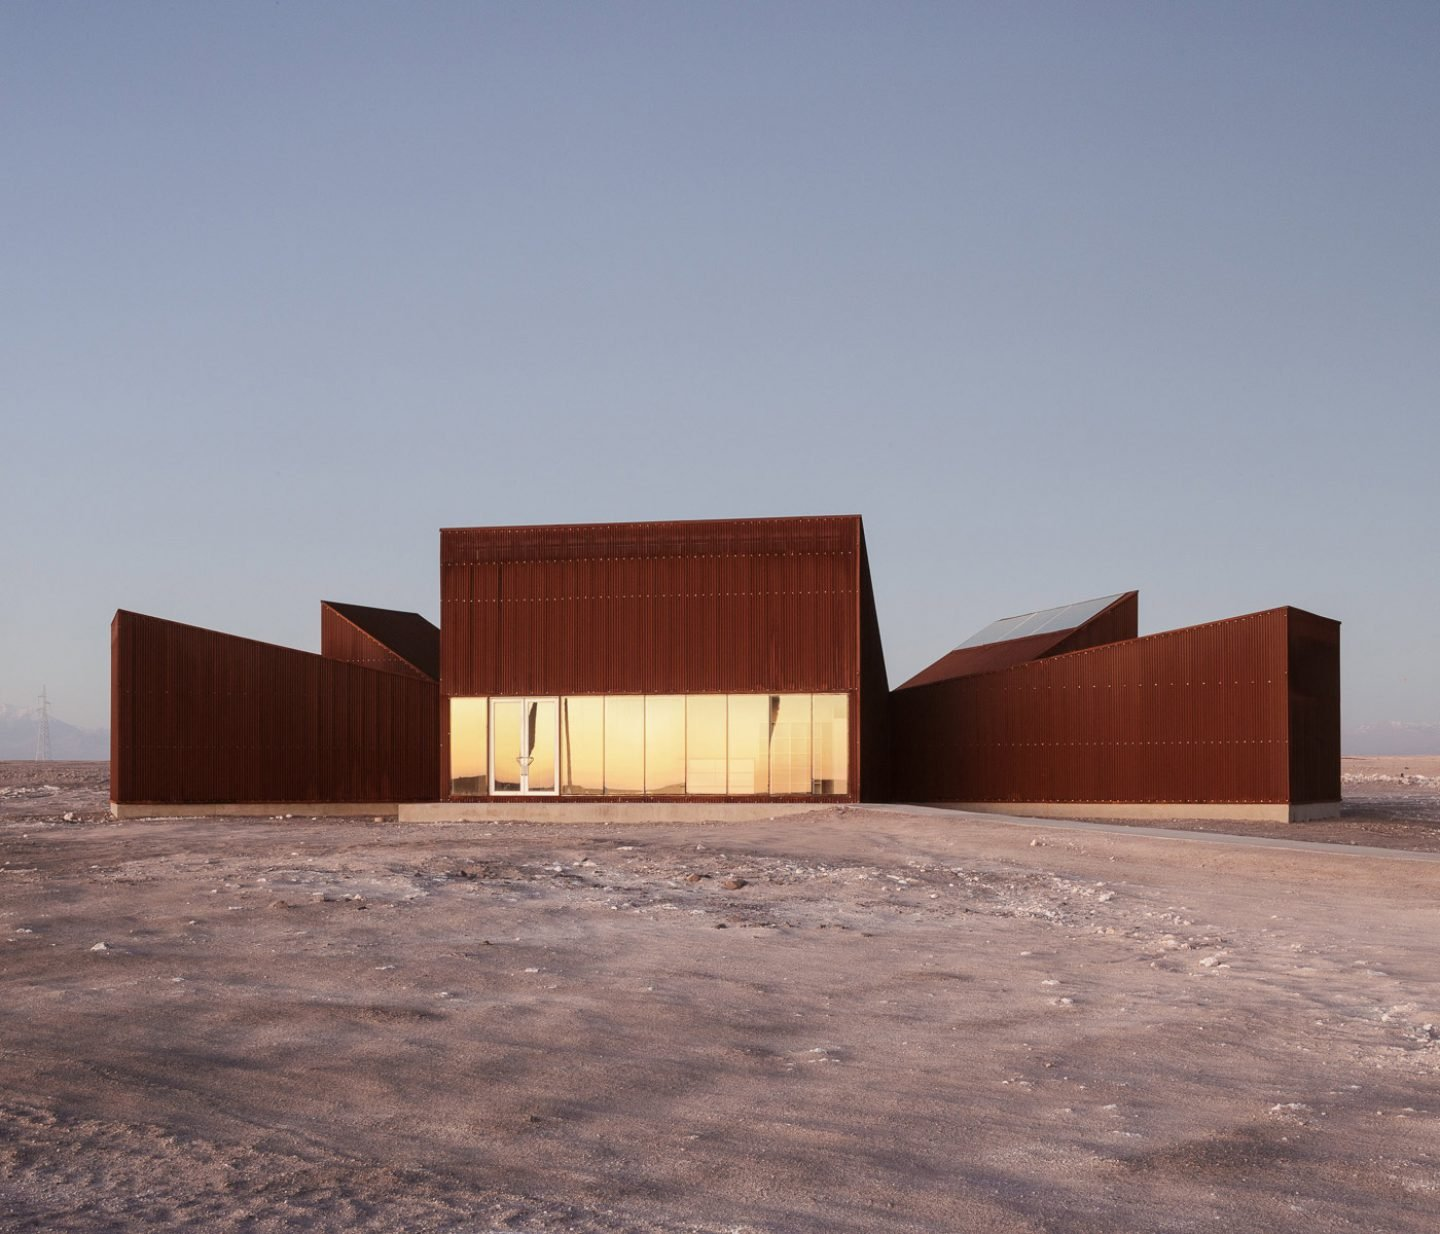 iGNANT-Architecture-Desert-Interpretation-Center-Emilio-Marin-Juan-Carlos-Lopez-9